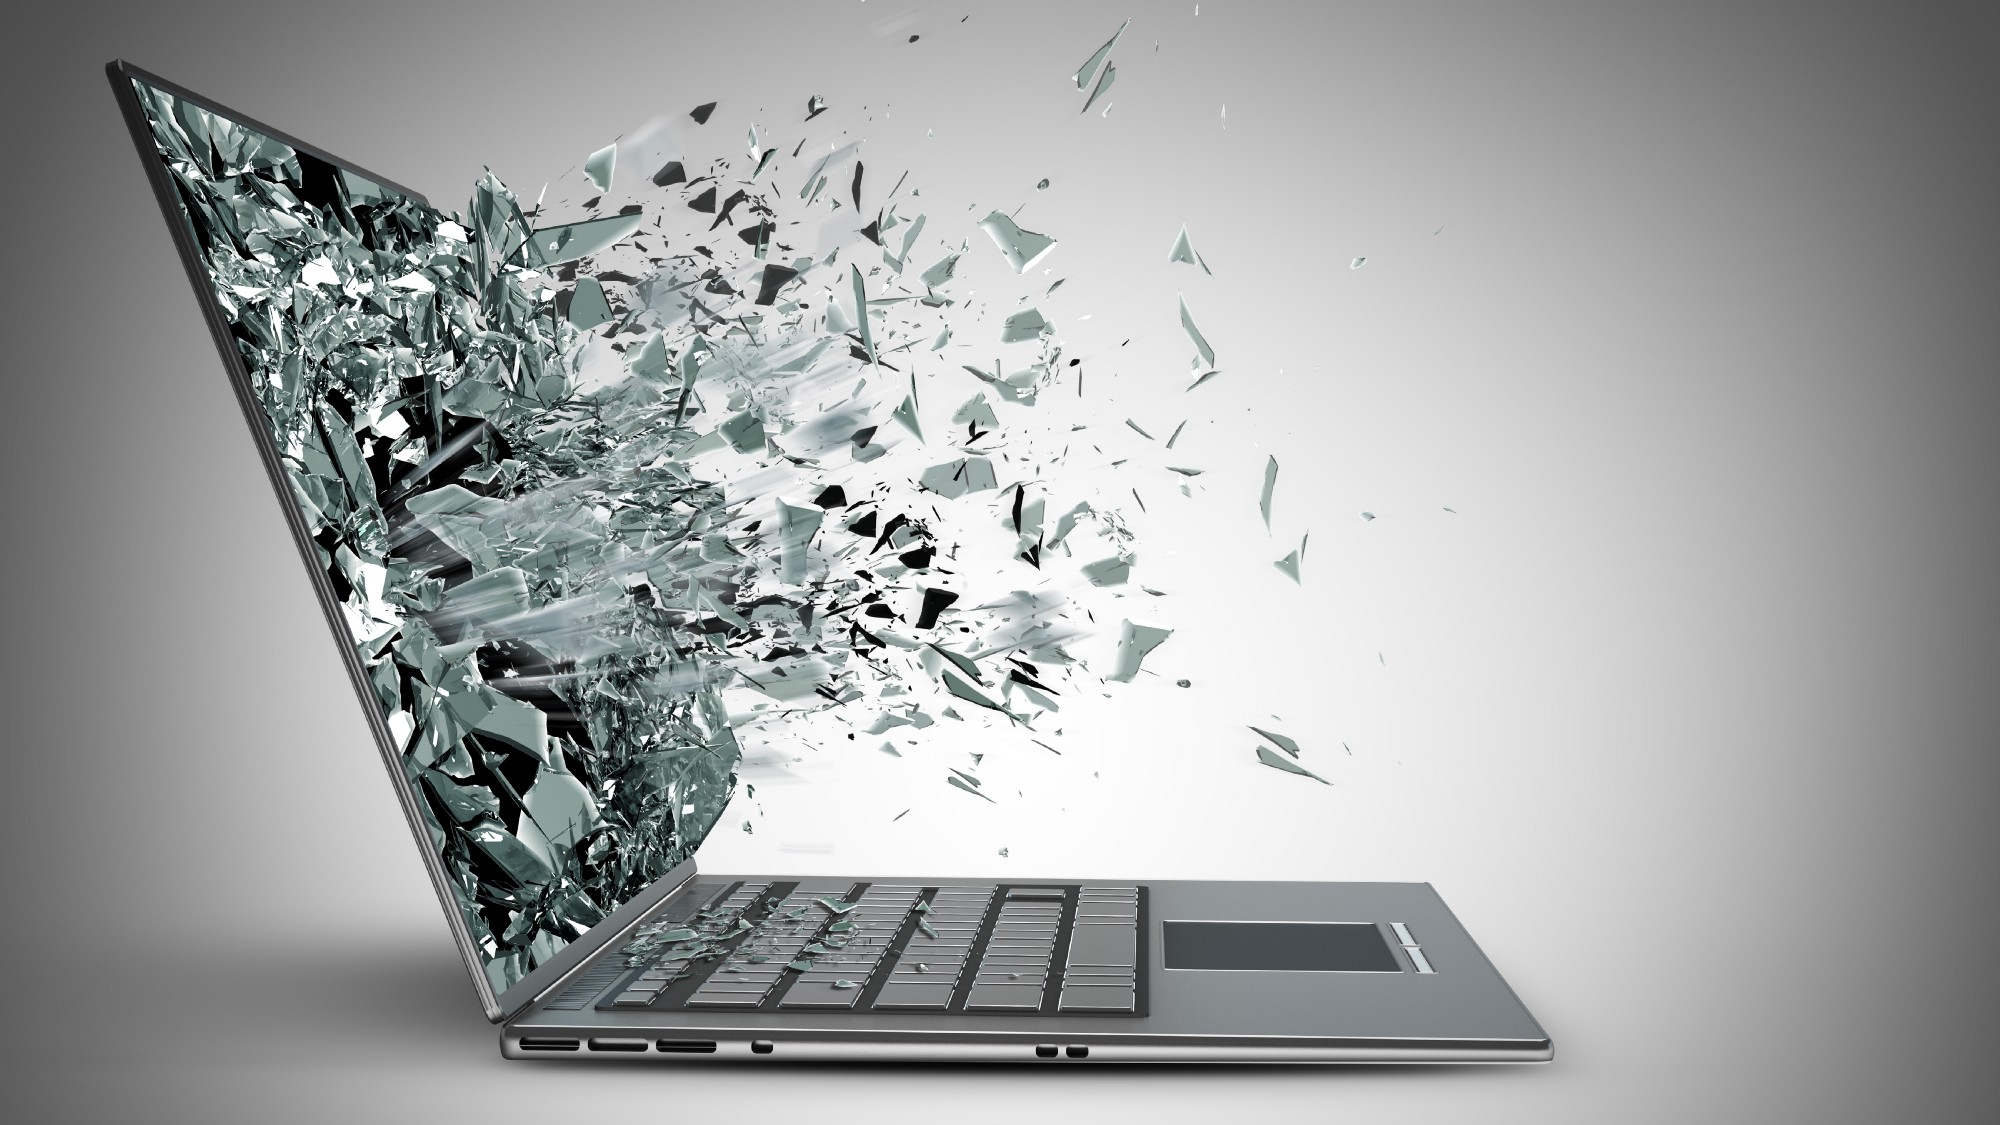 Photo of a laptop screen exploding